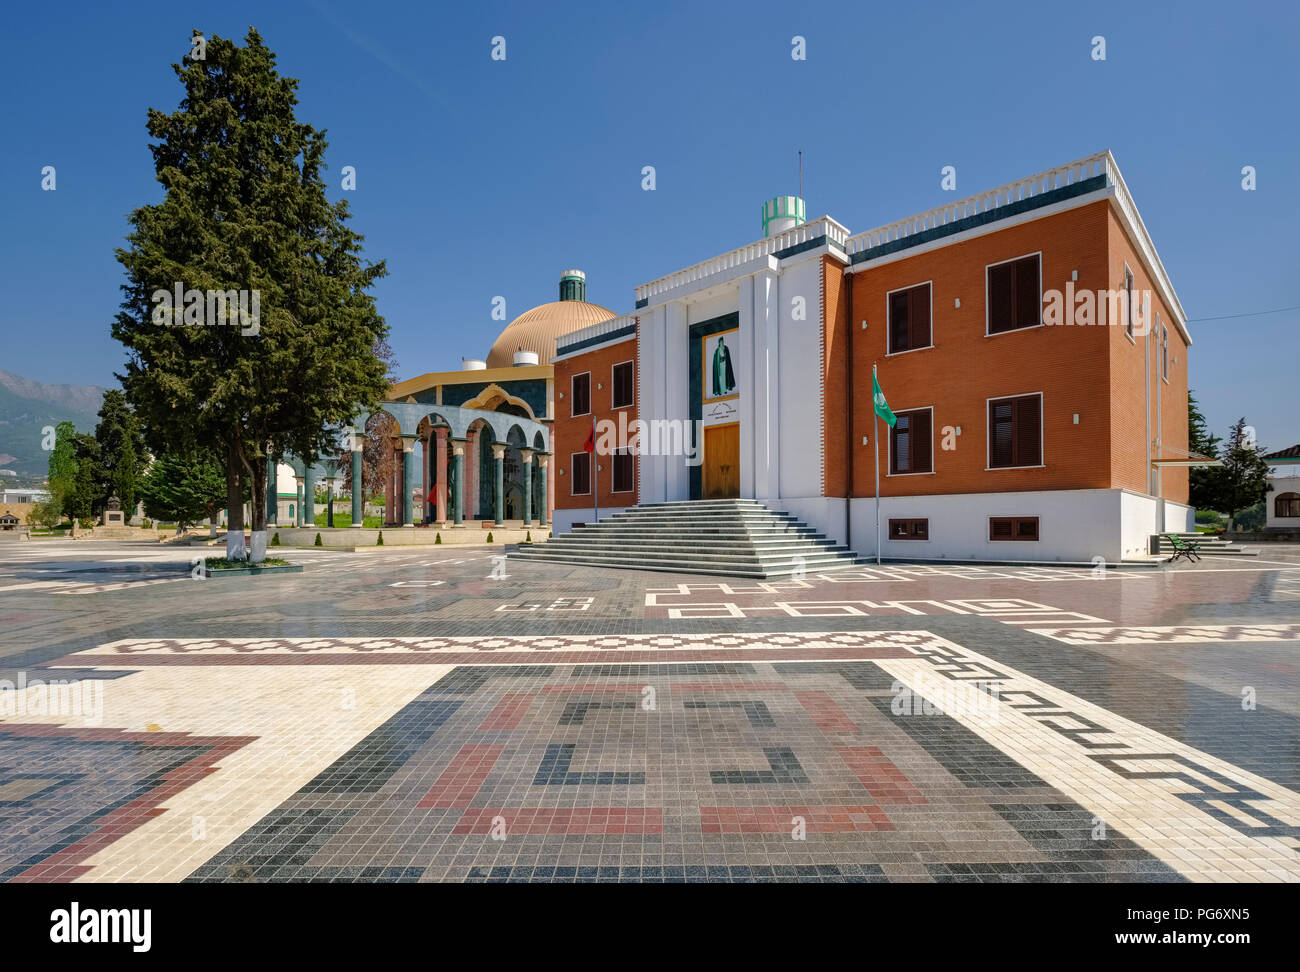 Albania, Tirana, World Bektashi Center - Stock Image